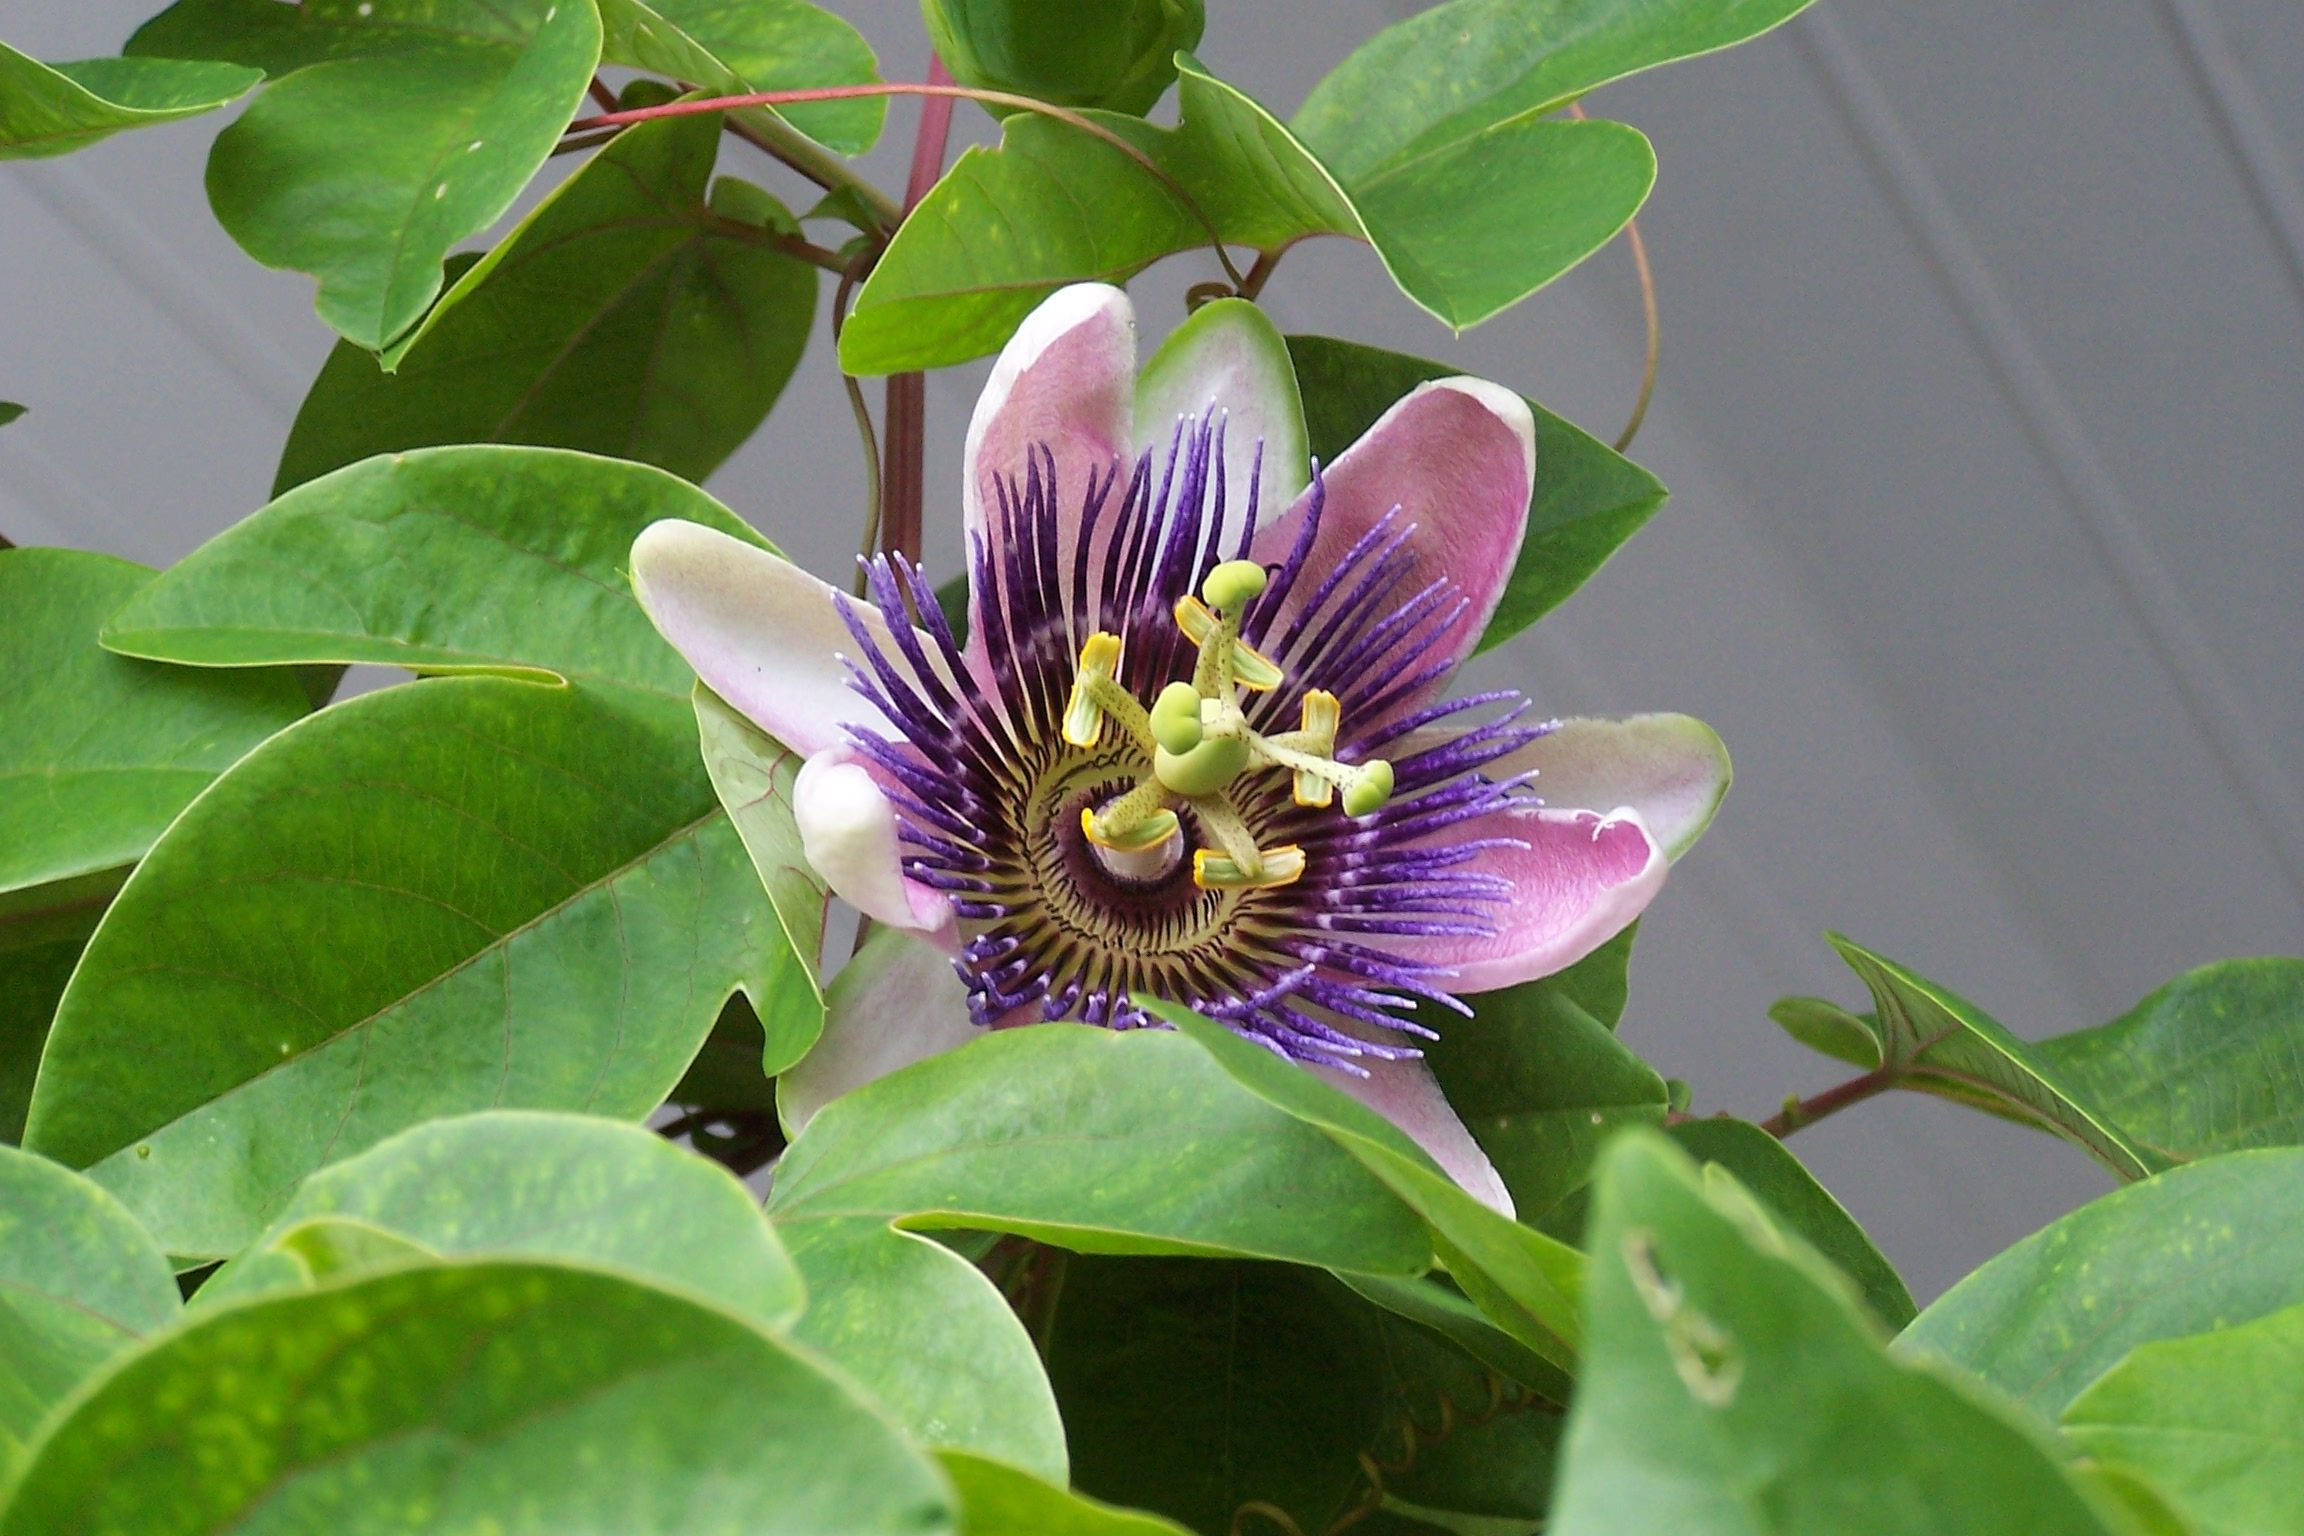 Passion flower vine planting this again fast growing beautiful